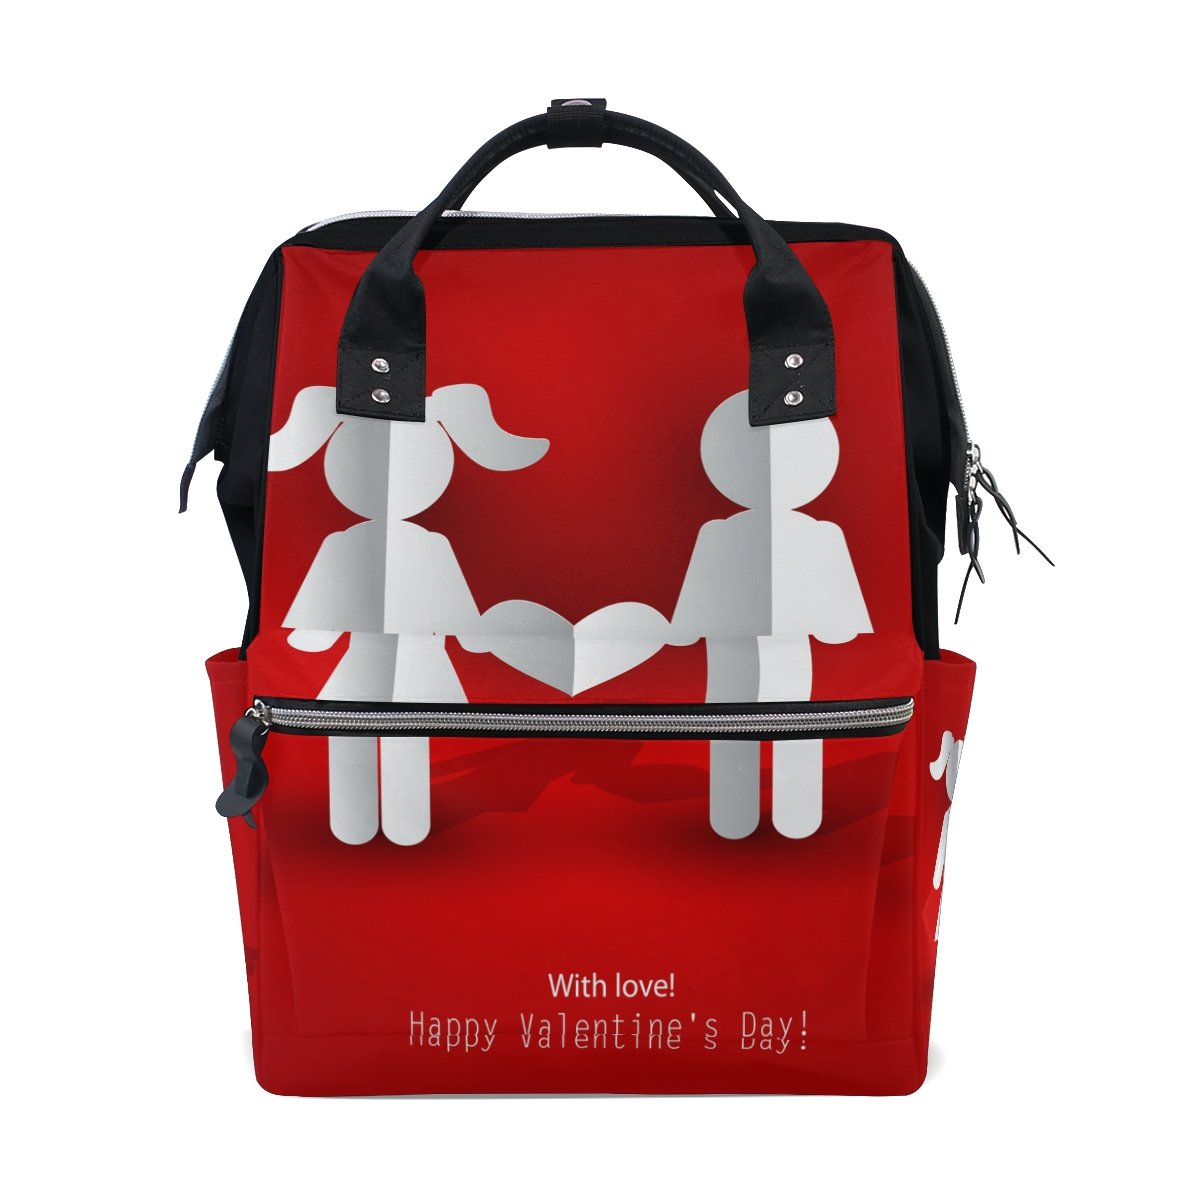 Backpack School Bag Wedding Heart Love Canvas Travel Doctor Style Daypack